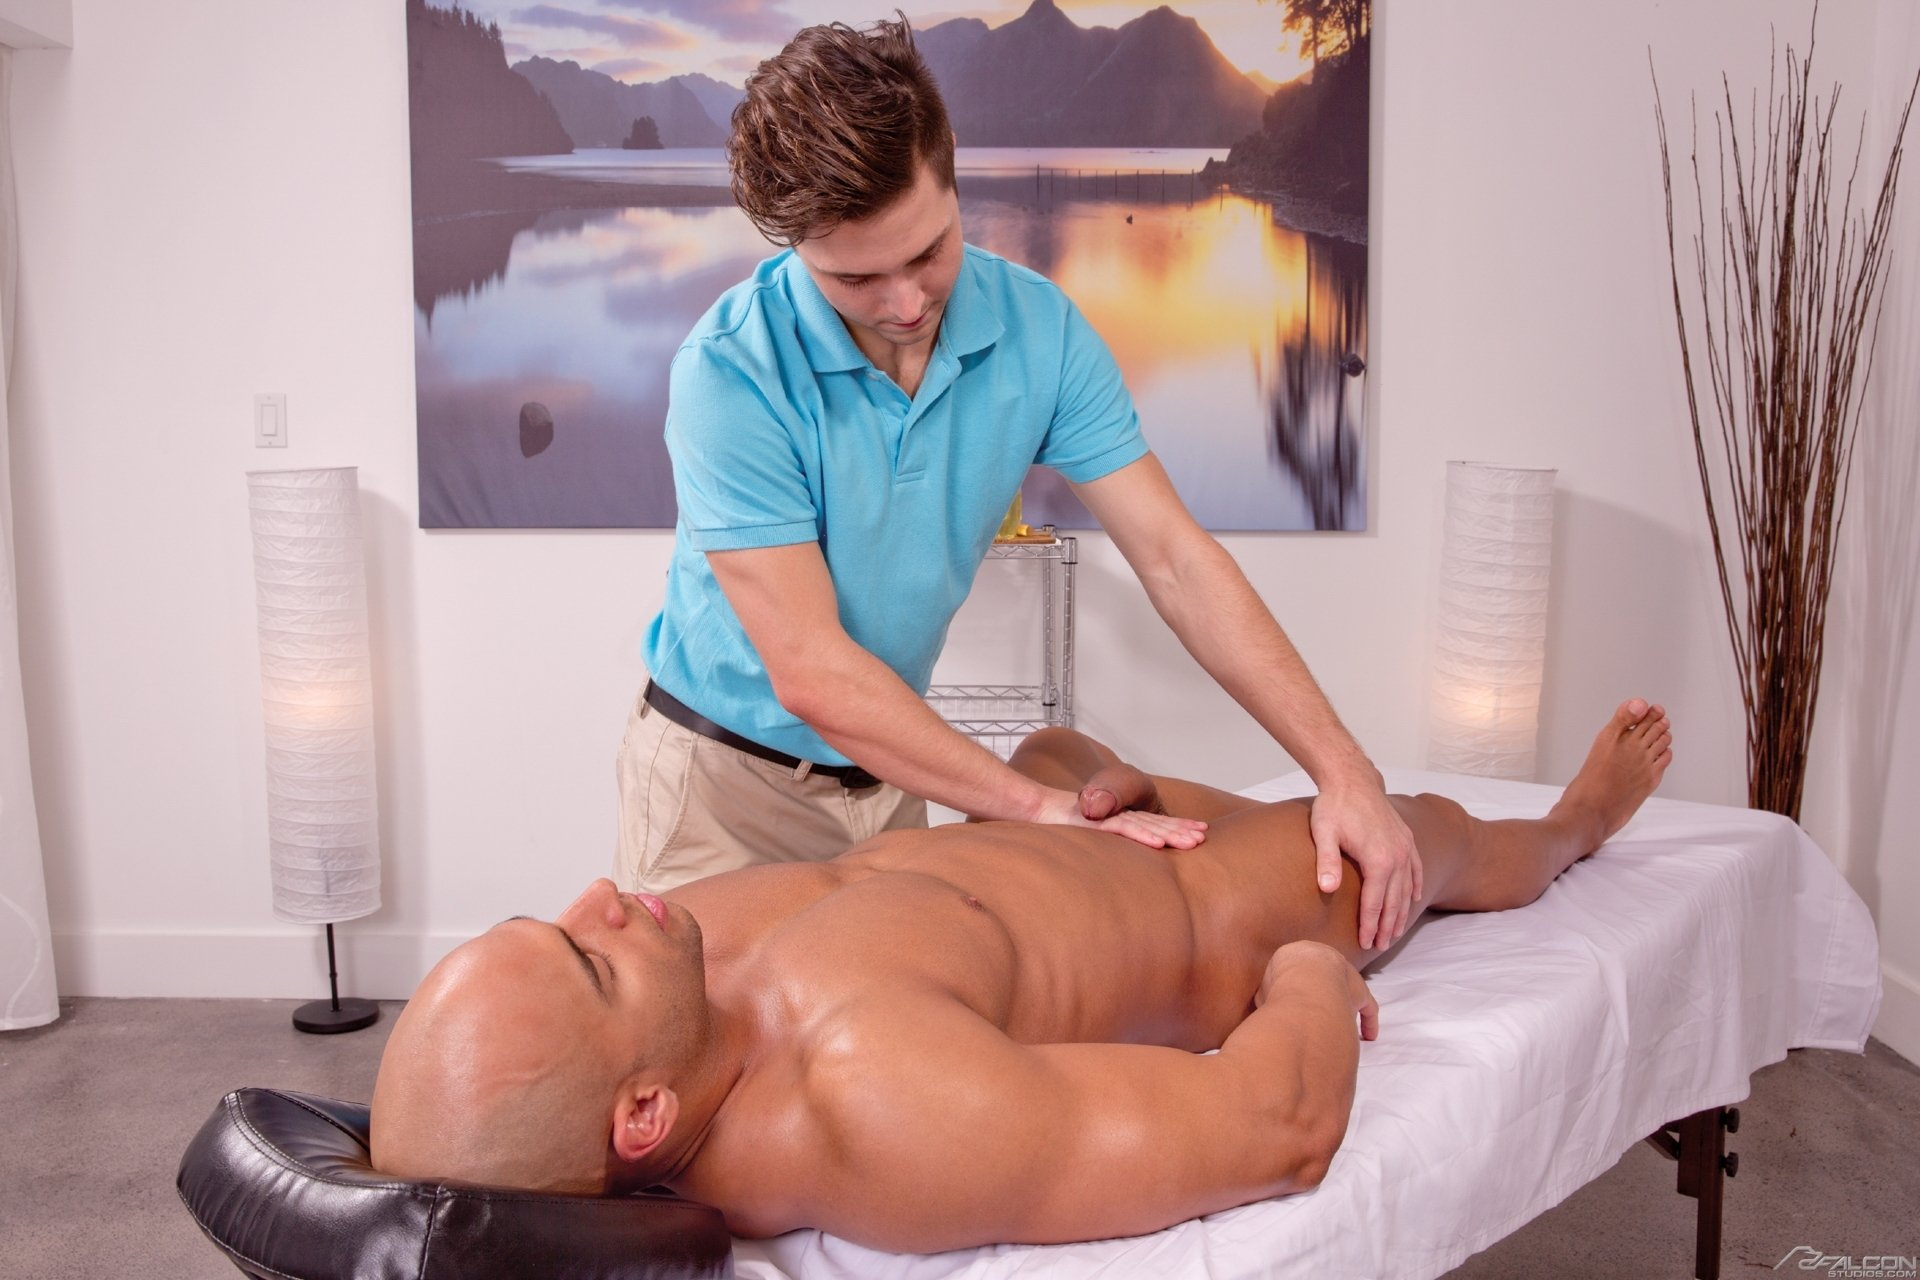 Reviews of gay massage